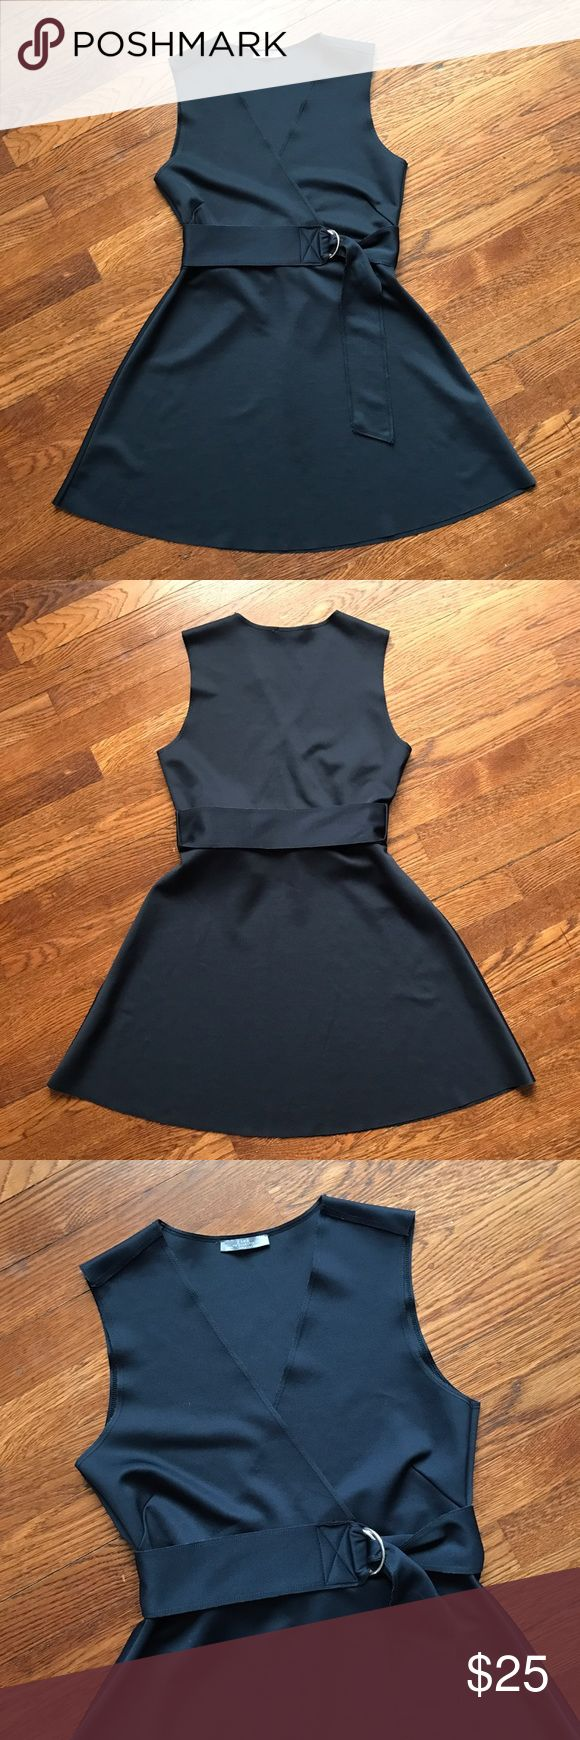 "Zara Mod Dress Cute super excellent condition Dress! Measures 32"" in length with a mod styled waist belt and raw hem.  • No Trading  • Reasonable Offers are Always Welcomed  • Ask Me For an Outfit Bundle Discount Zara Dresses"